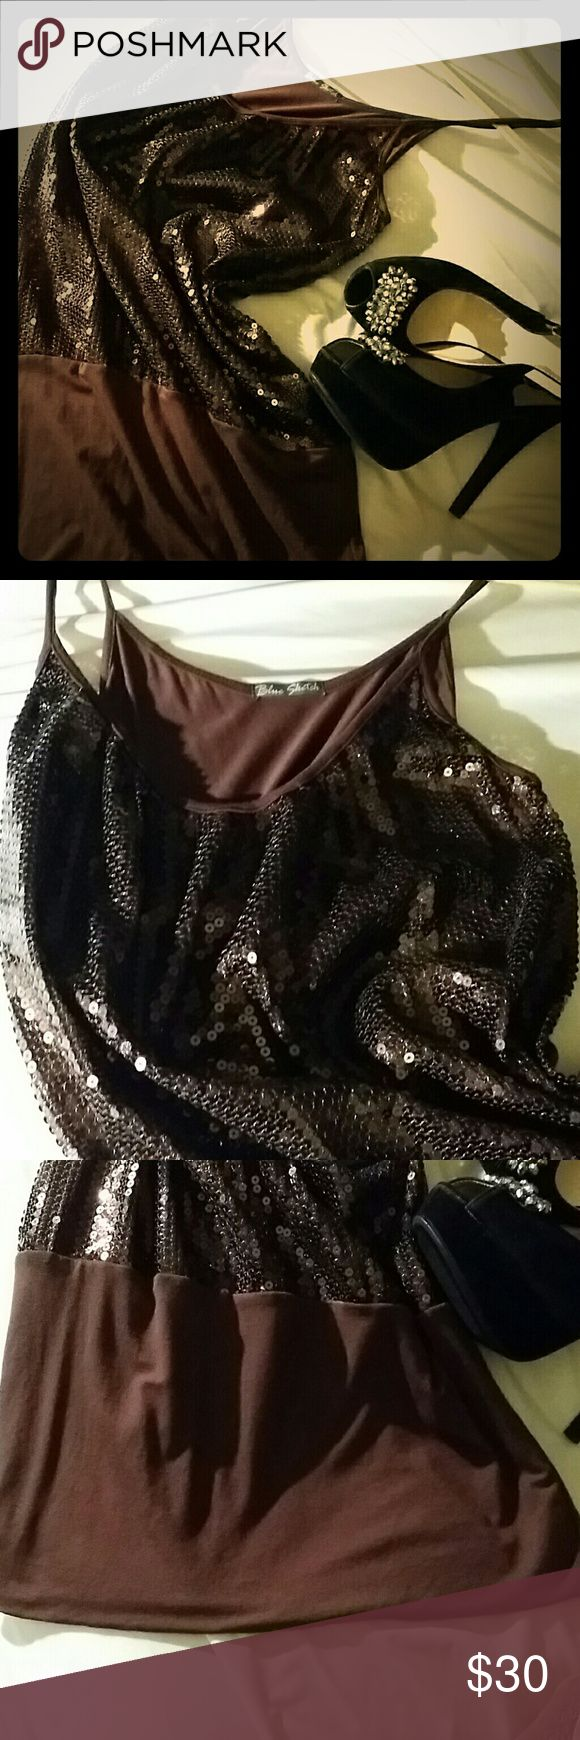 NWOT. Perfect New Years eve sequin tunic dress NWOT. Perfect New Years eve party sequin tunic dress dark bronze and brown. Blue Sketch Tops Tunics